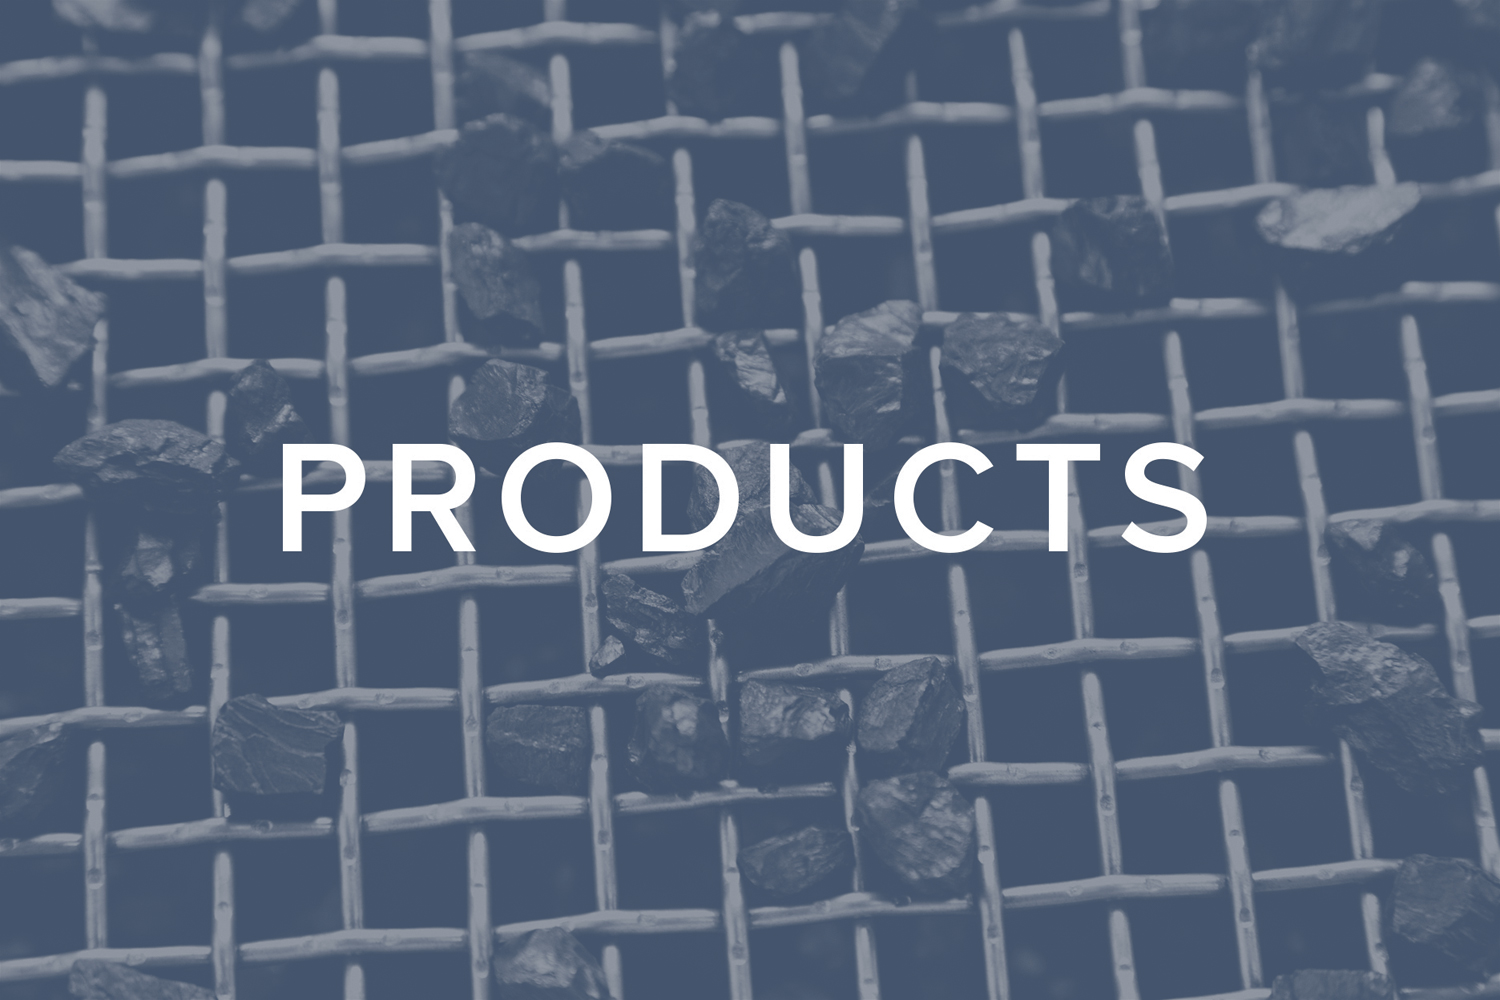 products-04.jpg